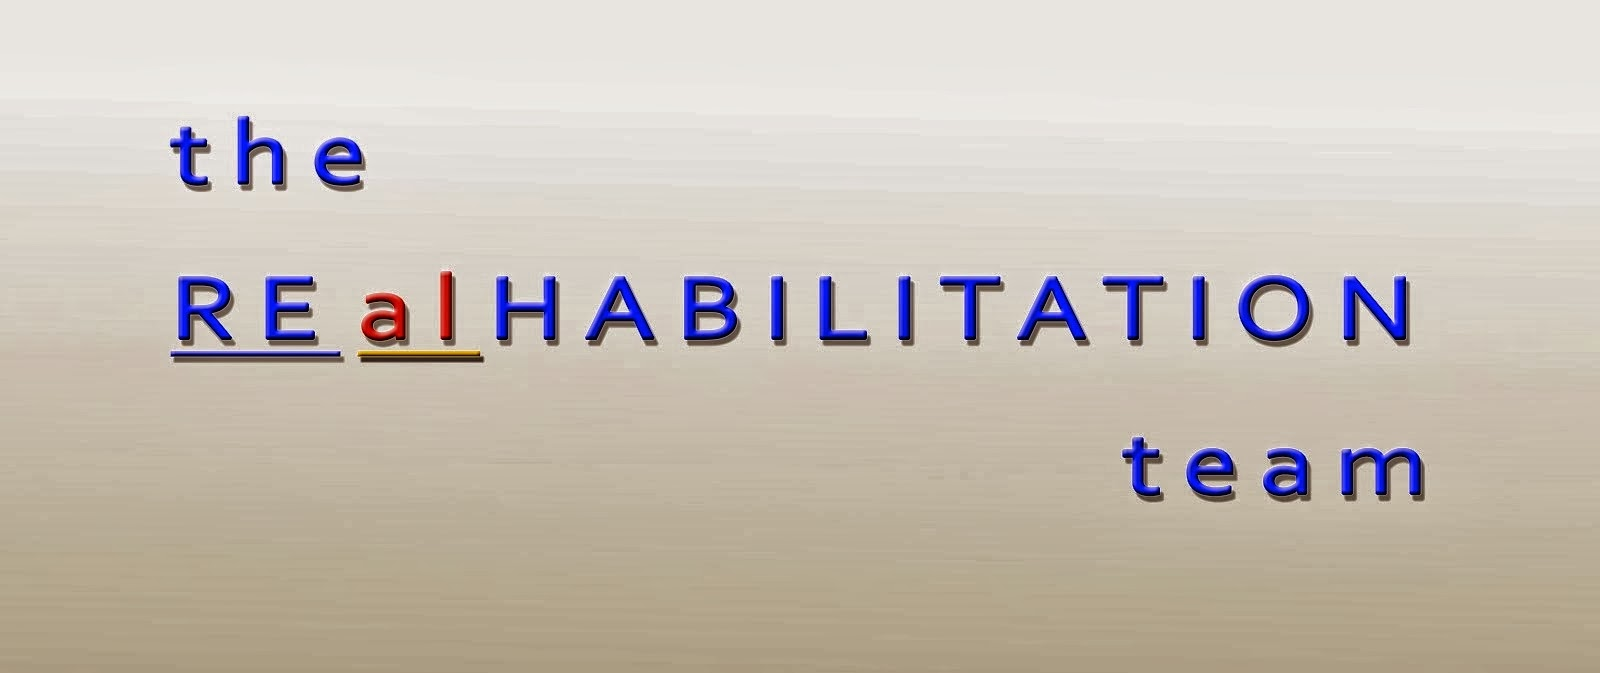 the REalHABILITATION team